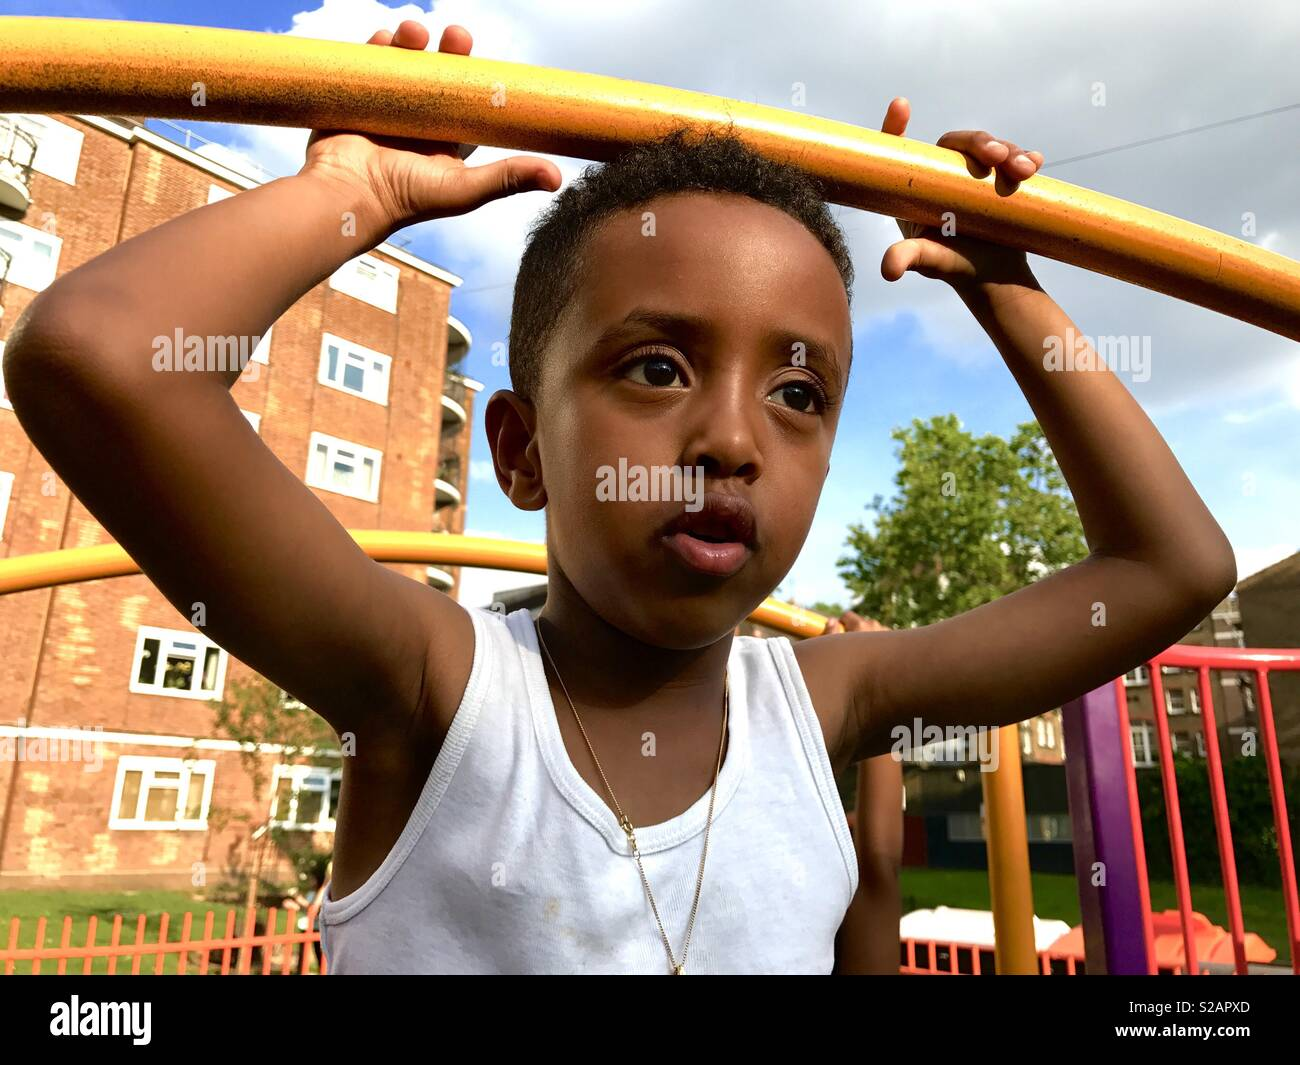 A good looking black boy with big eyes in a play ground wearing white vest - Stock Image